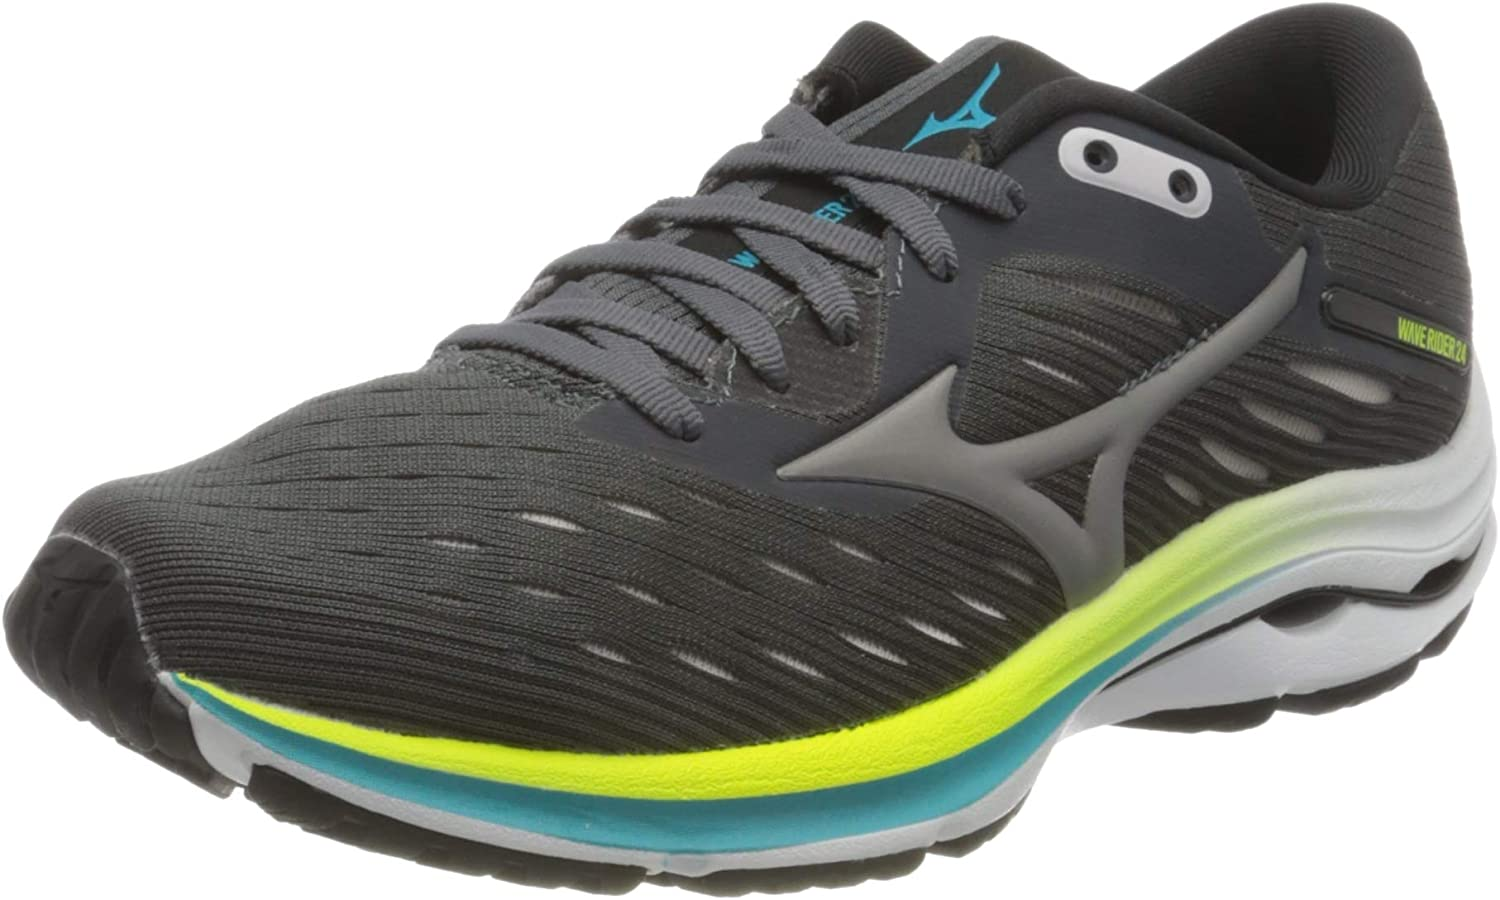 Mizuno Women's Wave Tampa Mall Rider Shoe Complete Free Shipping Road Running 24